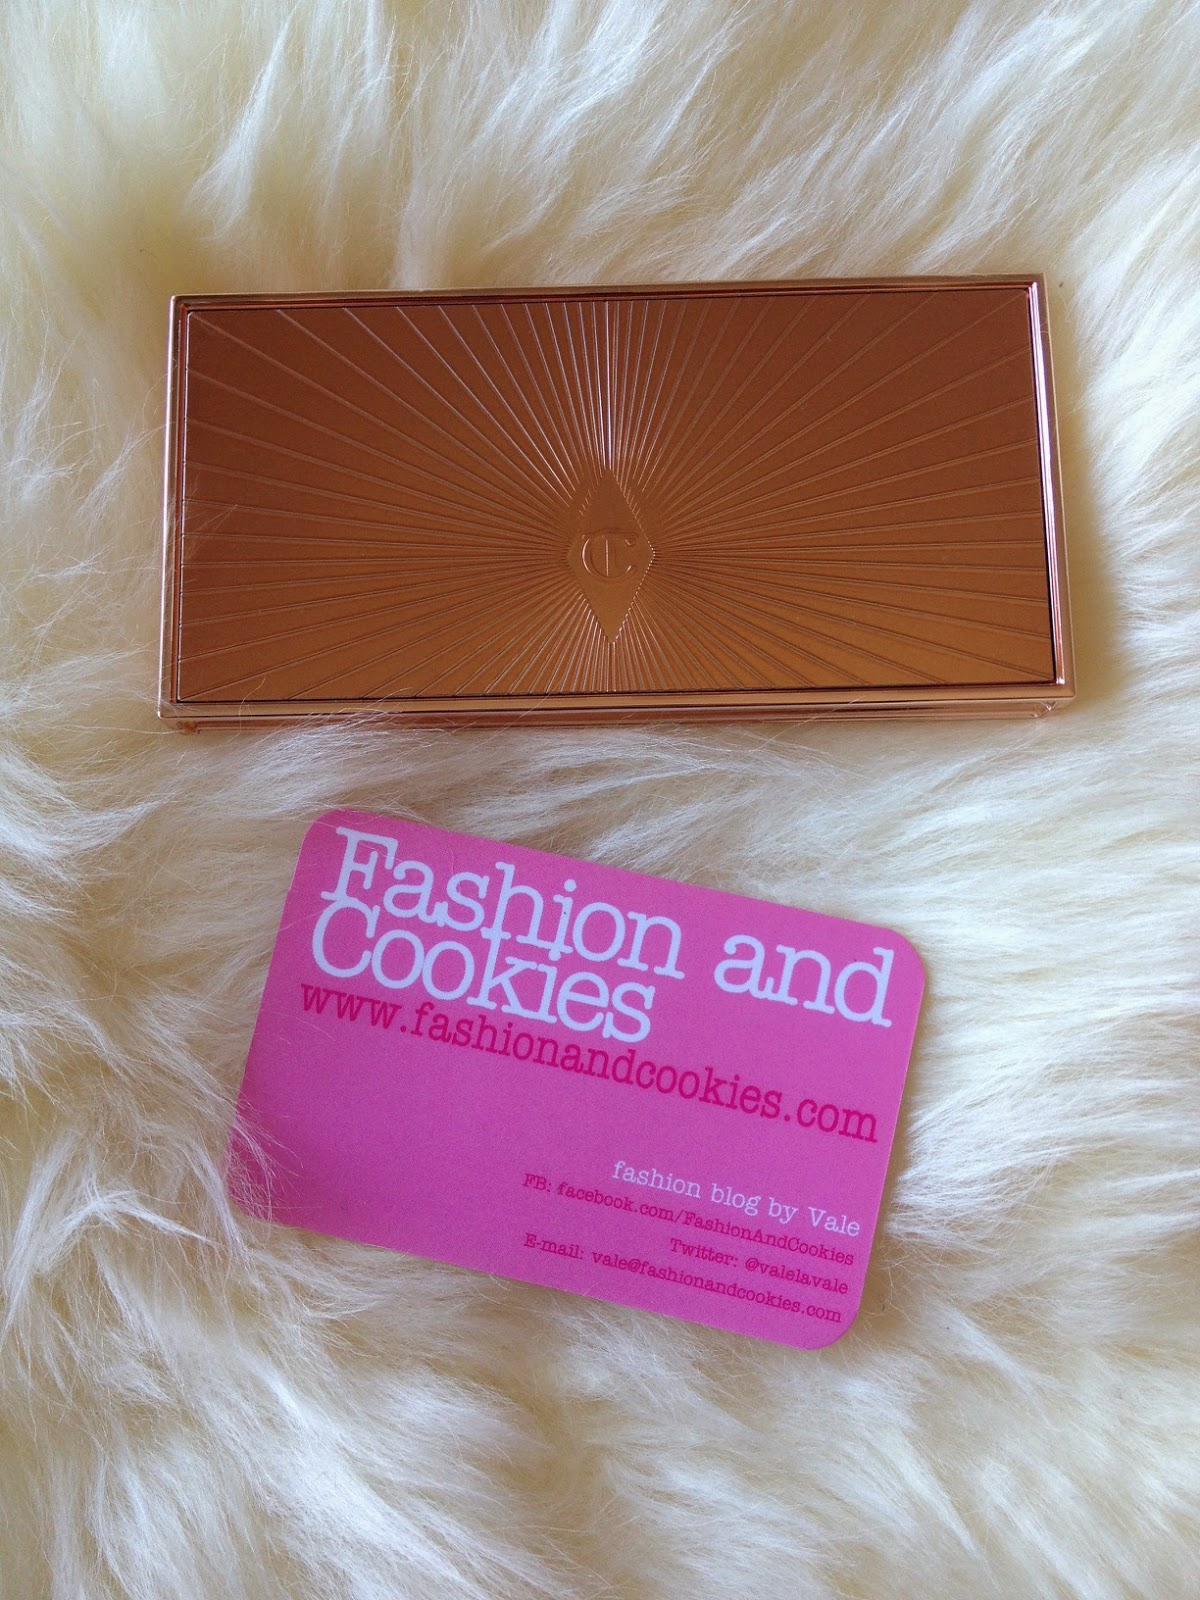 Charlotte Tilbury Filmstar Bronze & Glow review, recensione bronzer e illuminante su Fashion and Cookies fashion blog